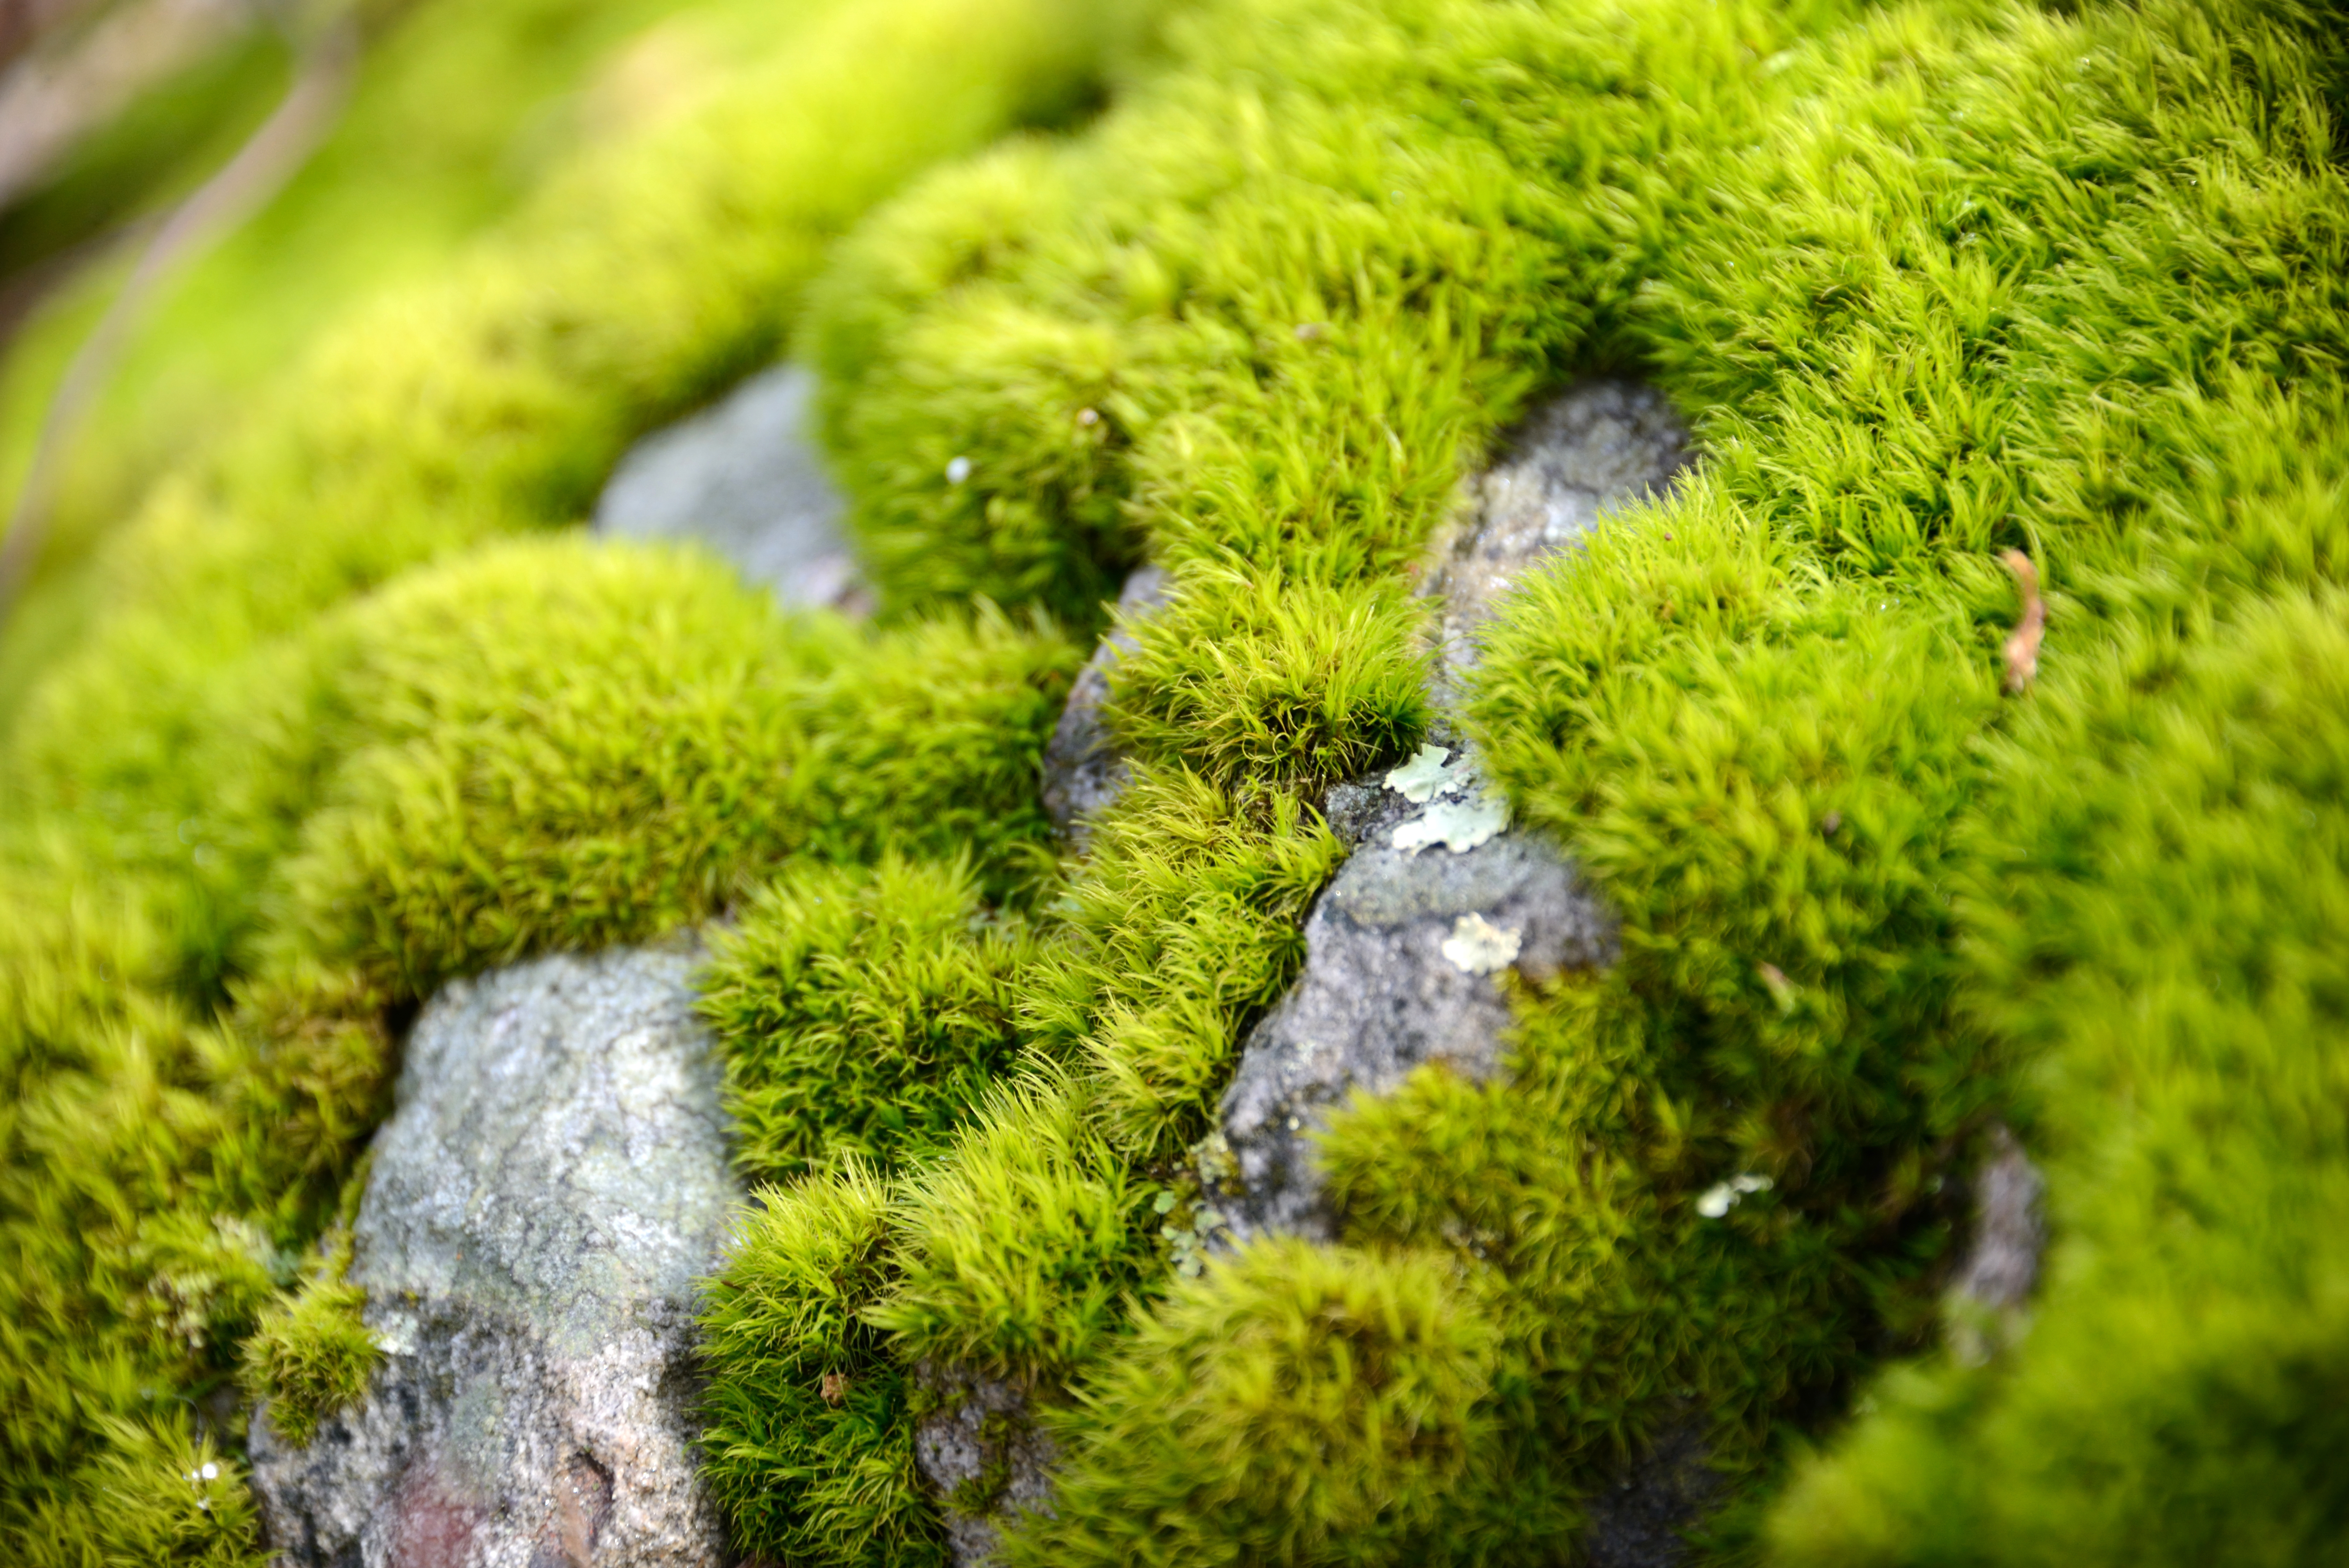 Mossy Details